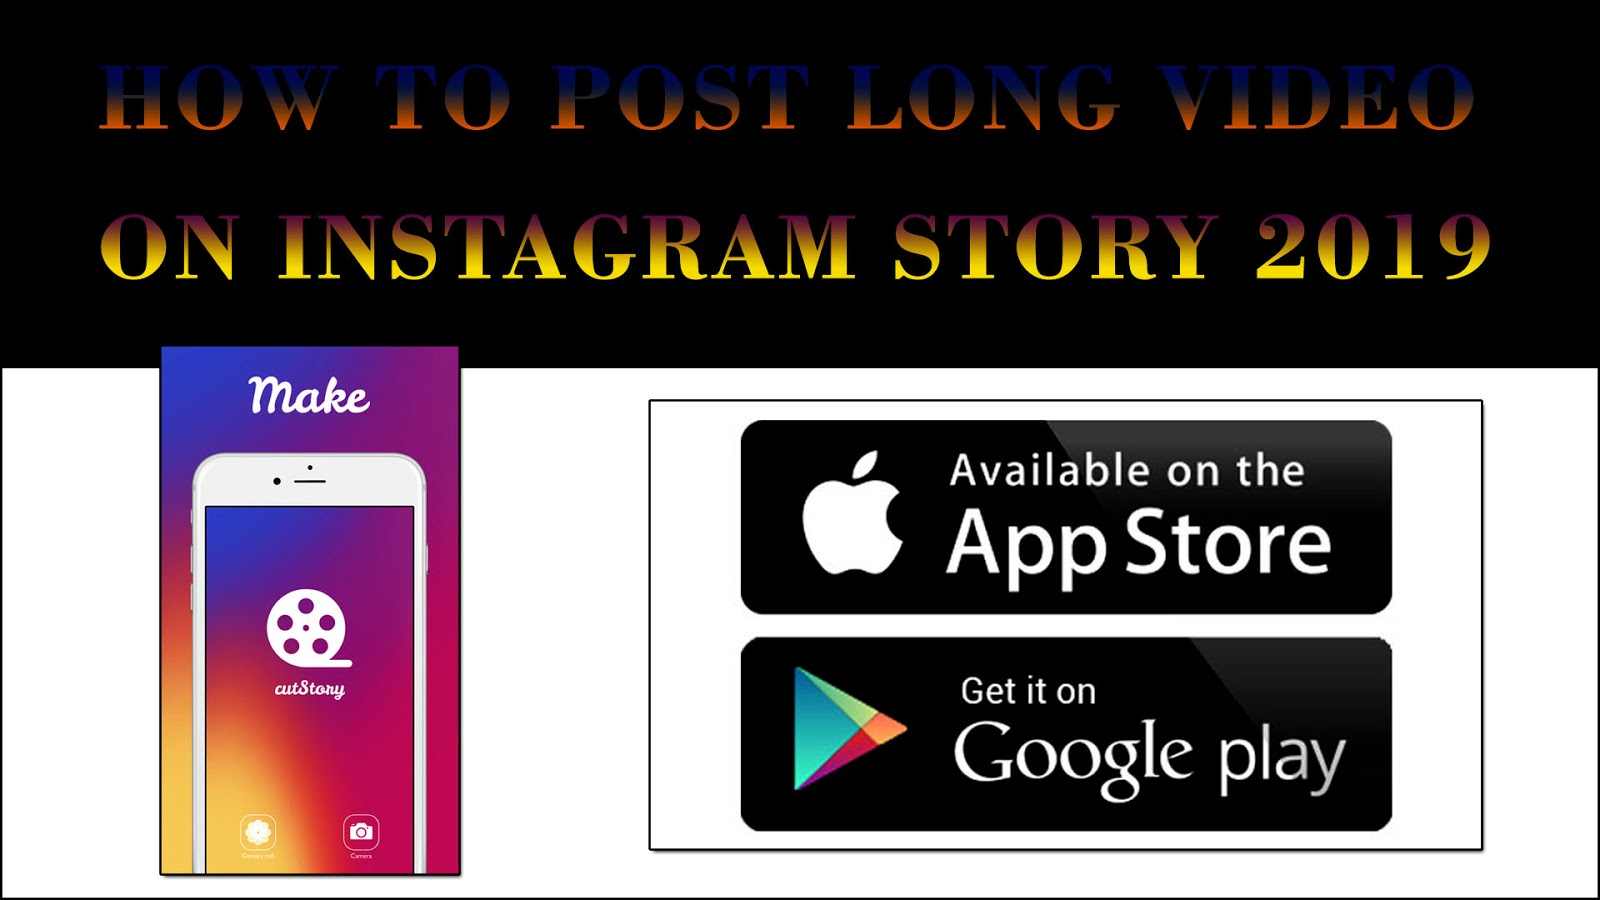 How to post a full video on instagram story